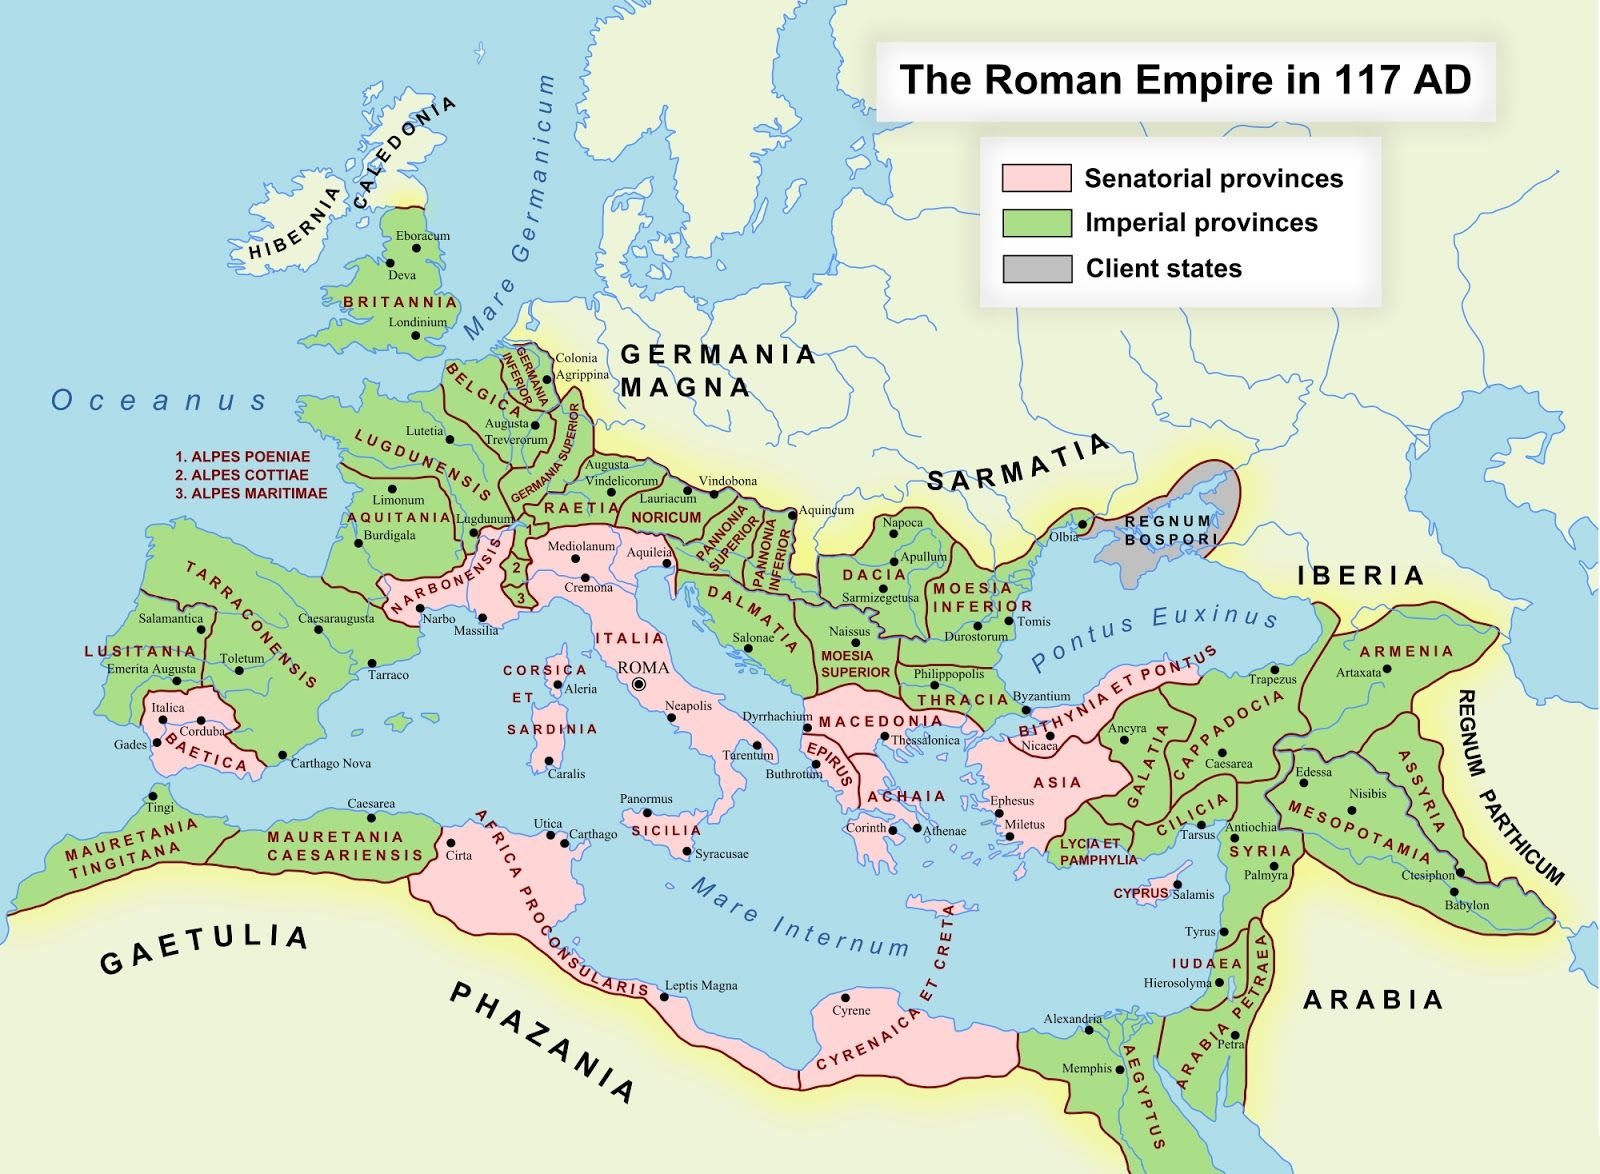 roman empire to 117 ad map Roman Empire 117 Ad Roman Empire Map Roman Empire Roman Province roman empire to 117 ad map